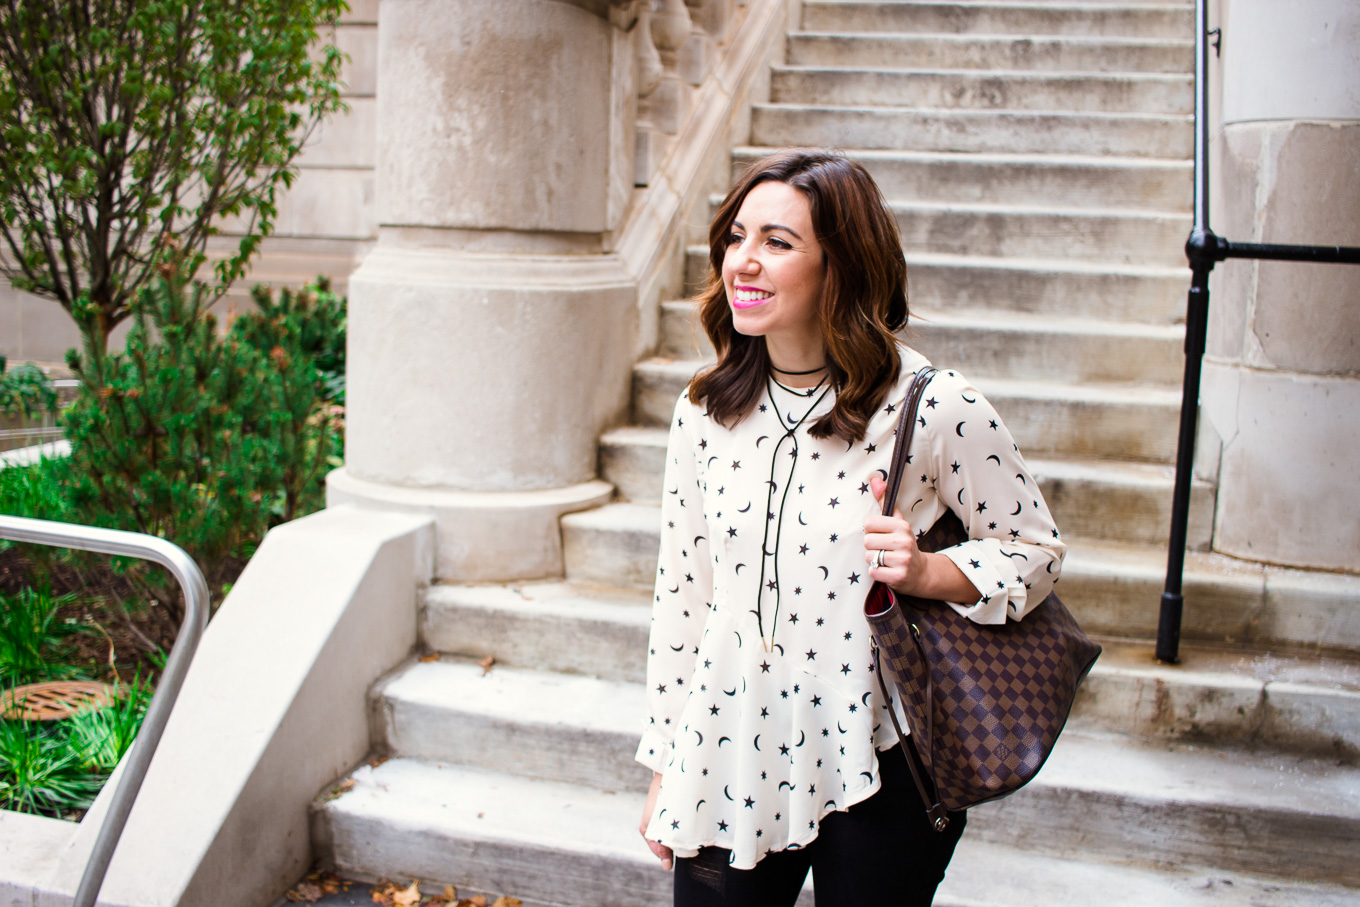 Lifestyle blogger Roxanne of Glass of Glam wearing a star print asymmetrical top, Old Navy denim, and pink combat boots - Asymmetric top with star print by popular Chicago fashion blogger Glass of Glam